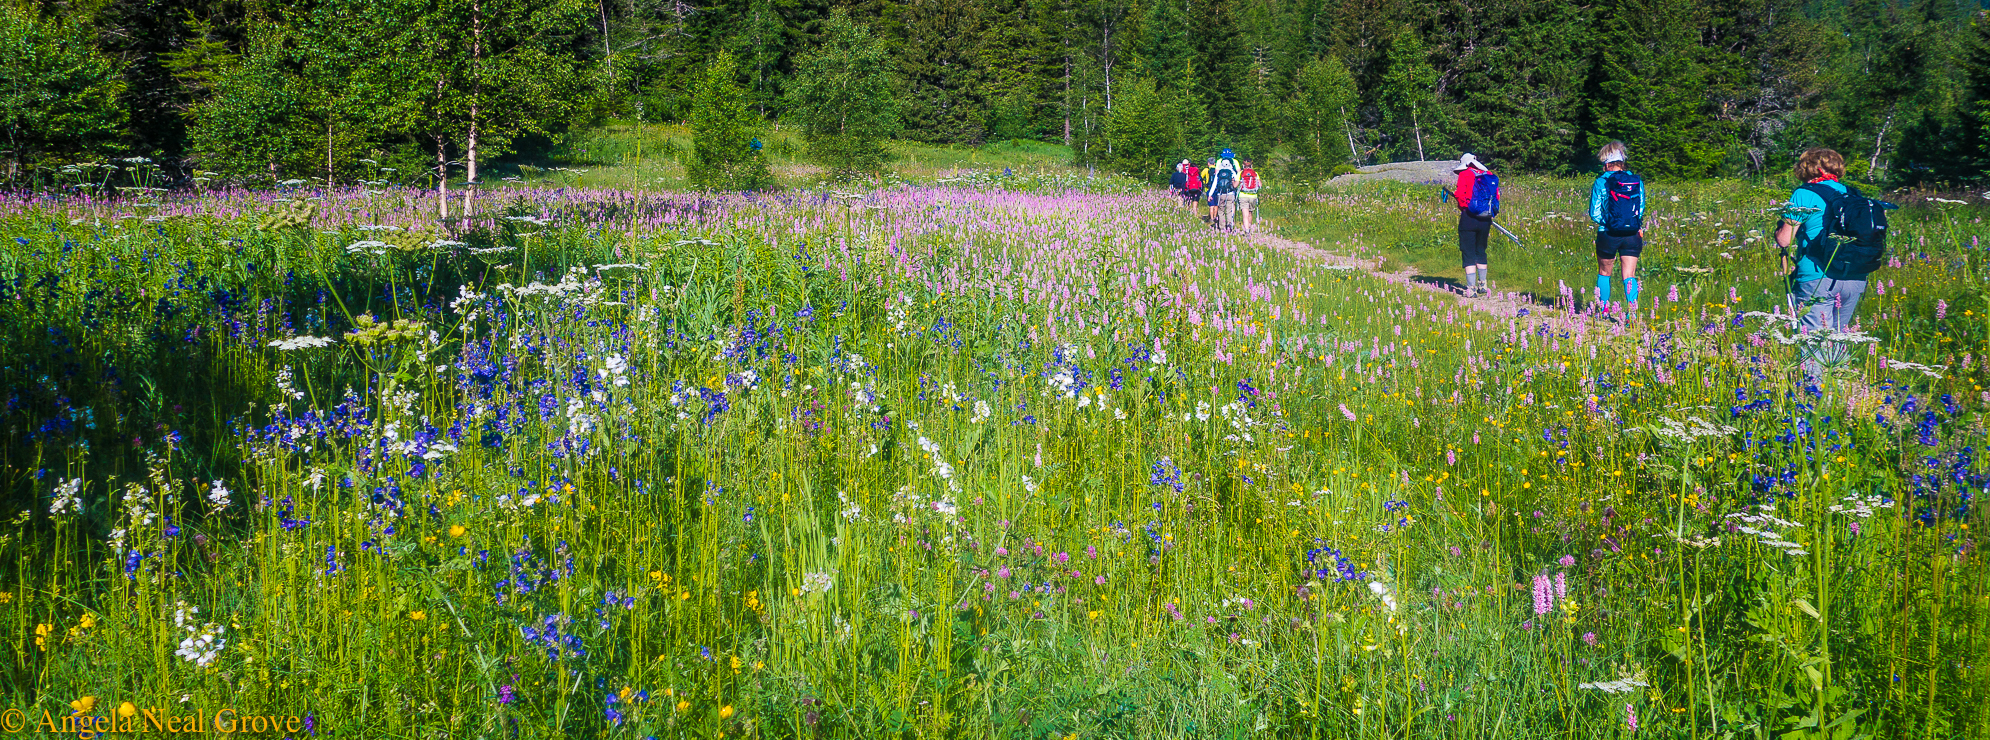 Mont Blanc Challenge: Hiking in France the early morning through fields of wild flowers //Photo: ANGrove